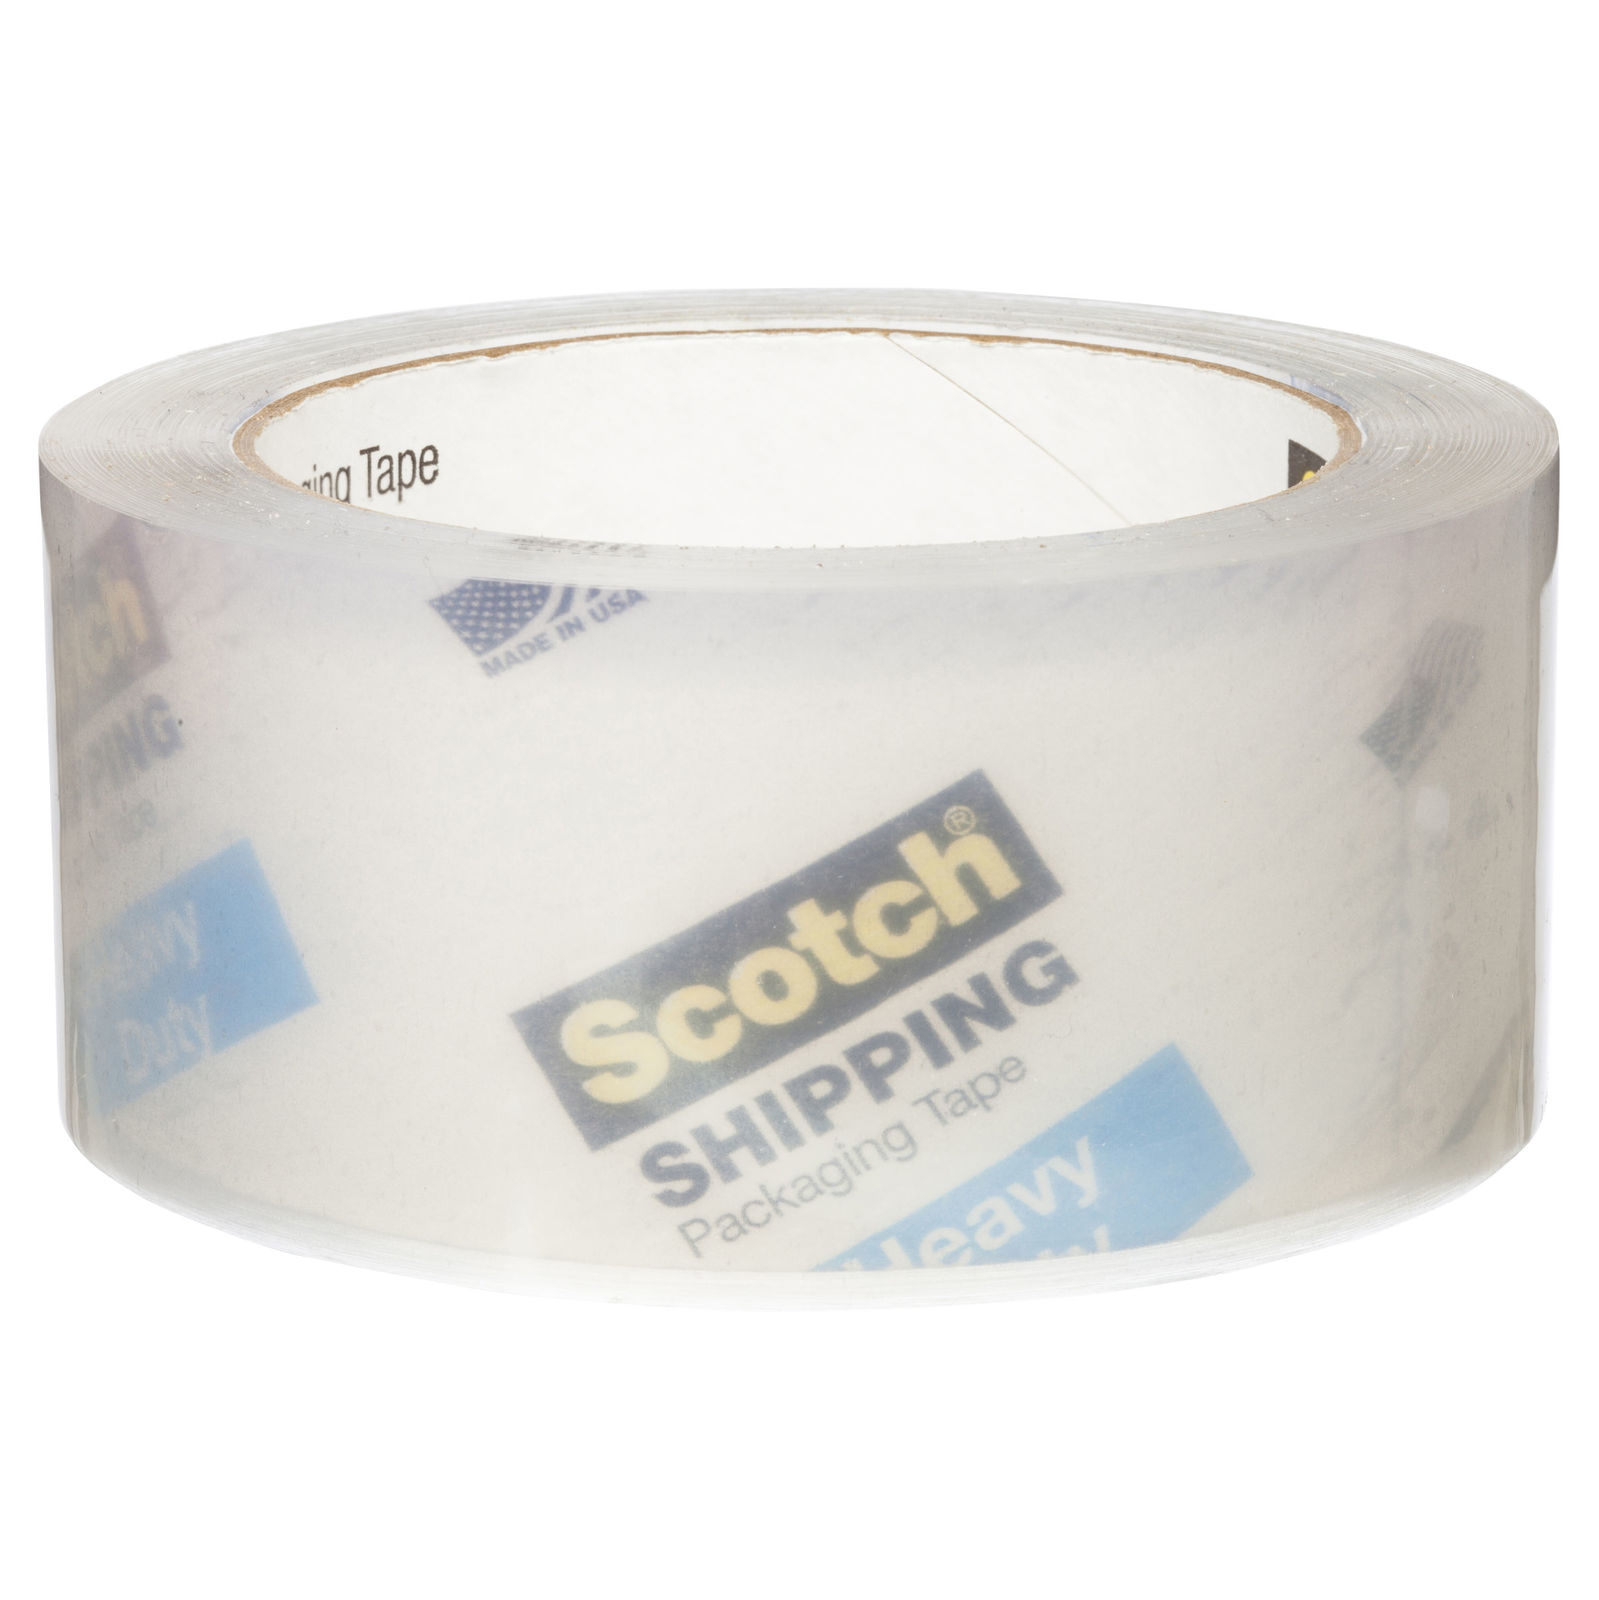 Scotch® Heavy Duty Shipping Packaging Tape with Dispenser - Clear (48mm x 50m) image